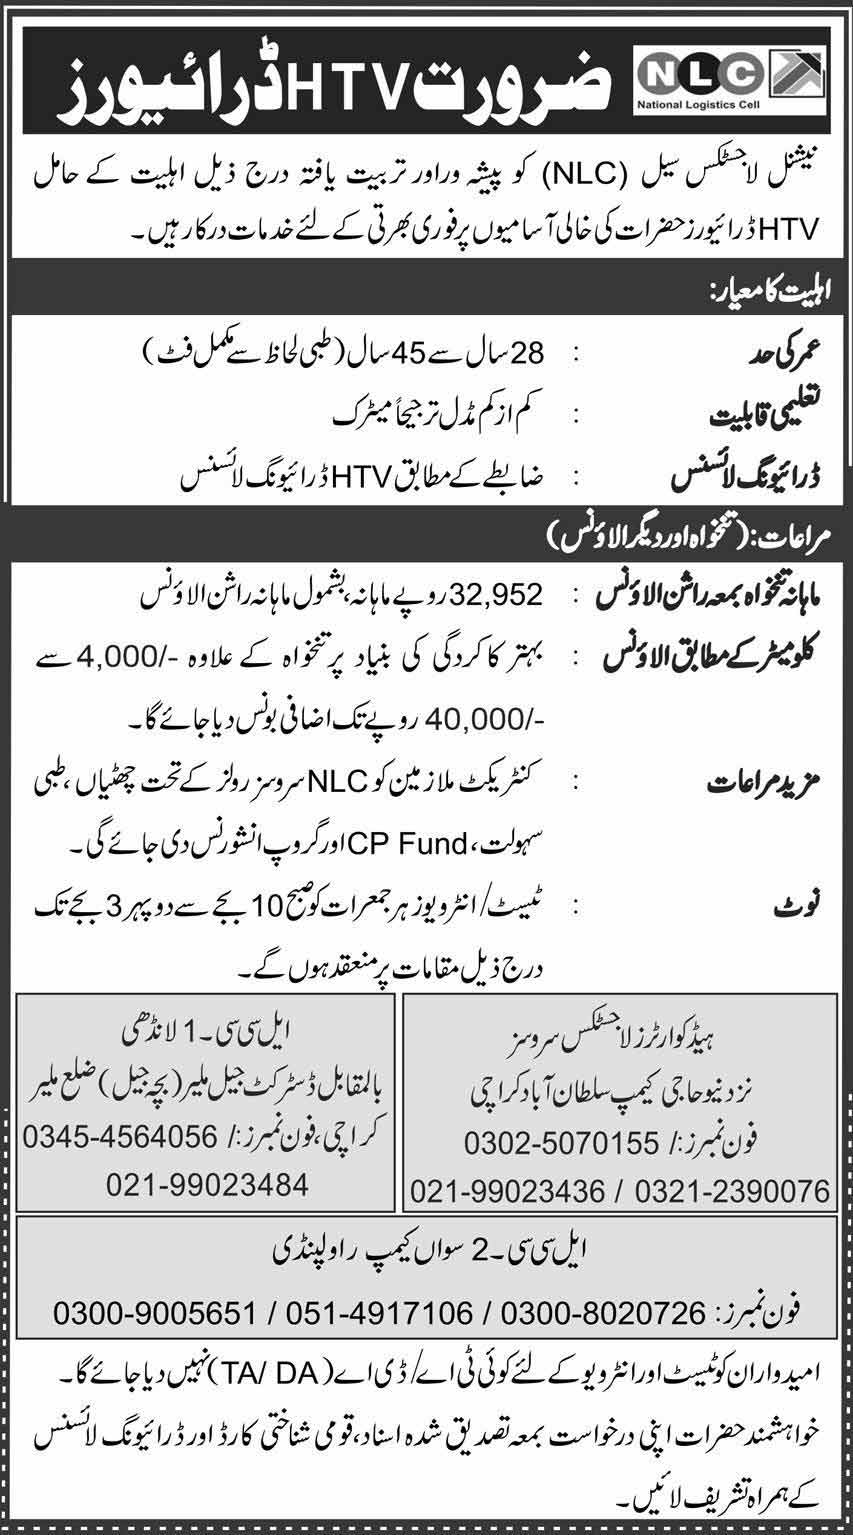 National Logistic Cell NLC latest Jobs Advertisement 2020 in Rawalpindi